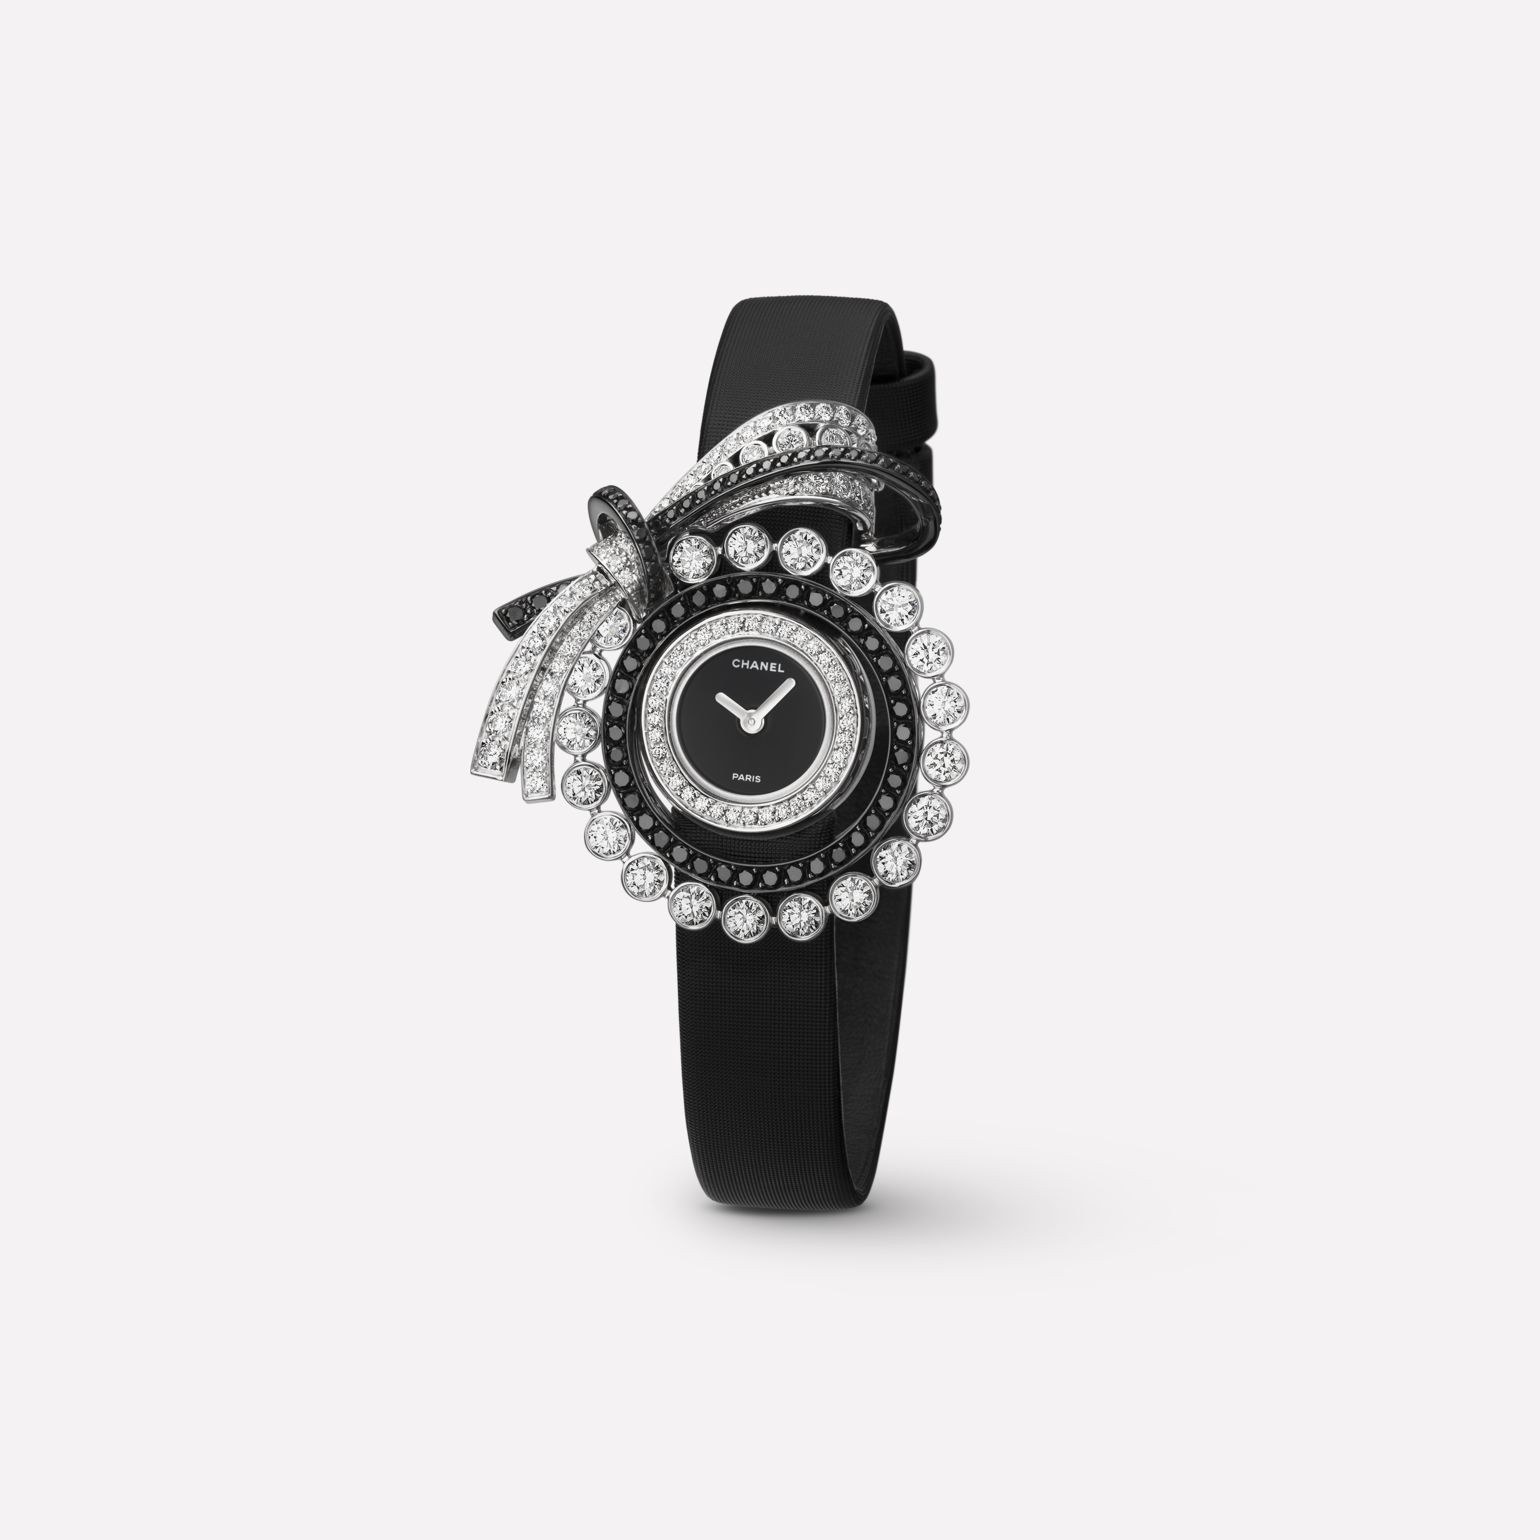 Ruban Jewelry Watch Ribbon motif in 18K white gold with white and black diamonds